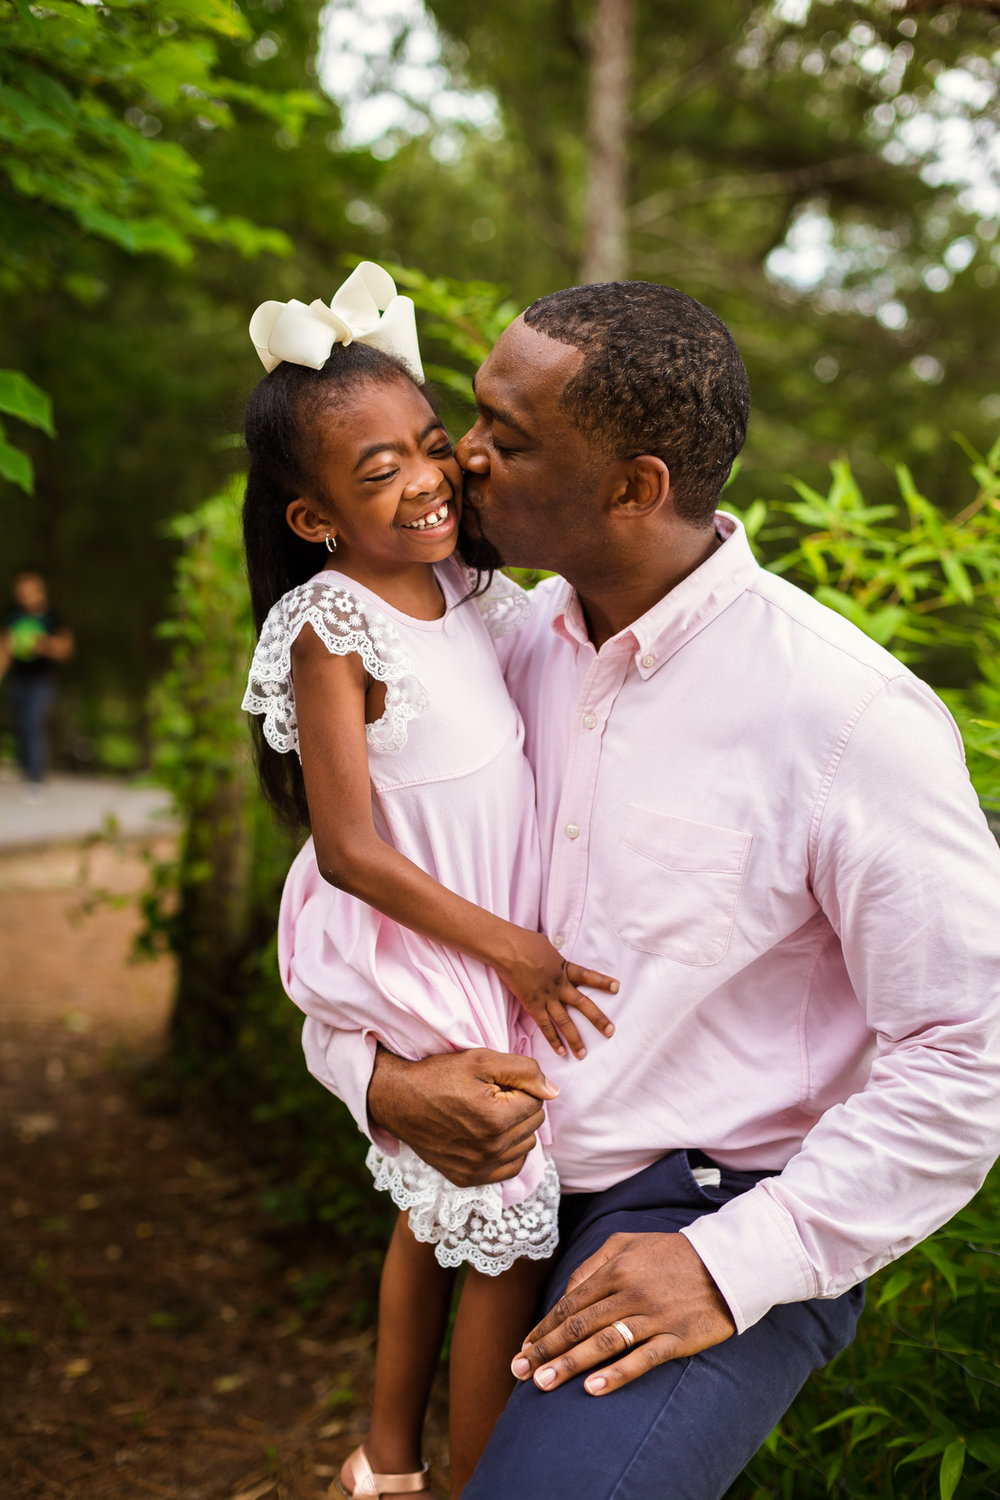 Raney Family Portraits  at  Sims Lake Park Atlanta by Ayeris Weddings -1723.jpg